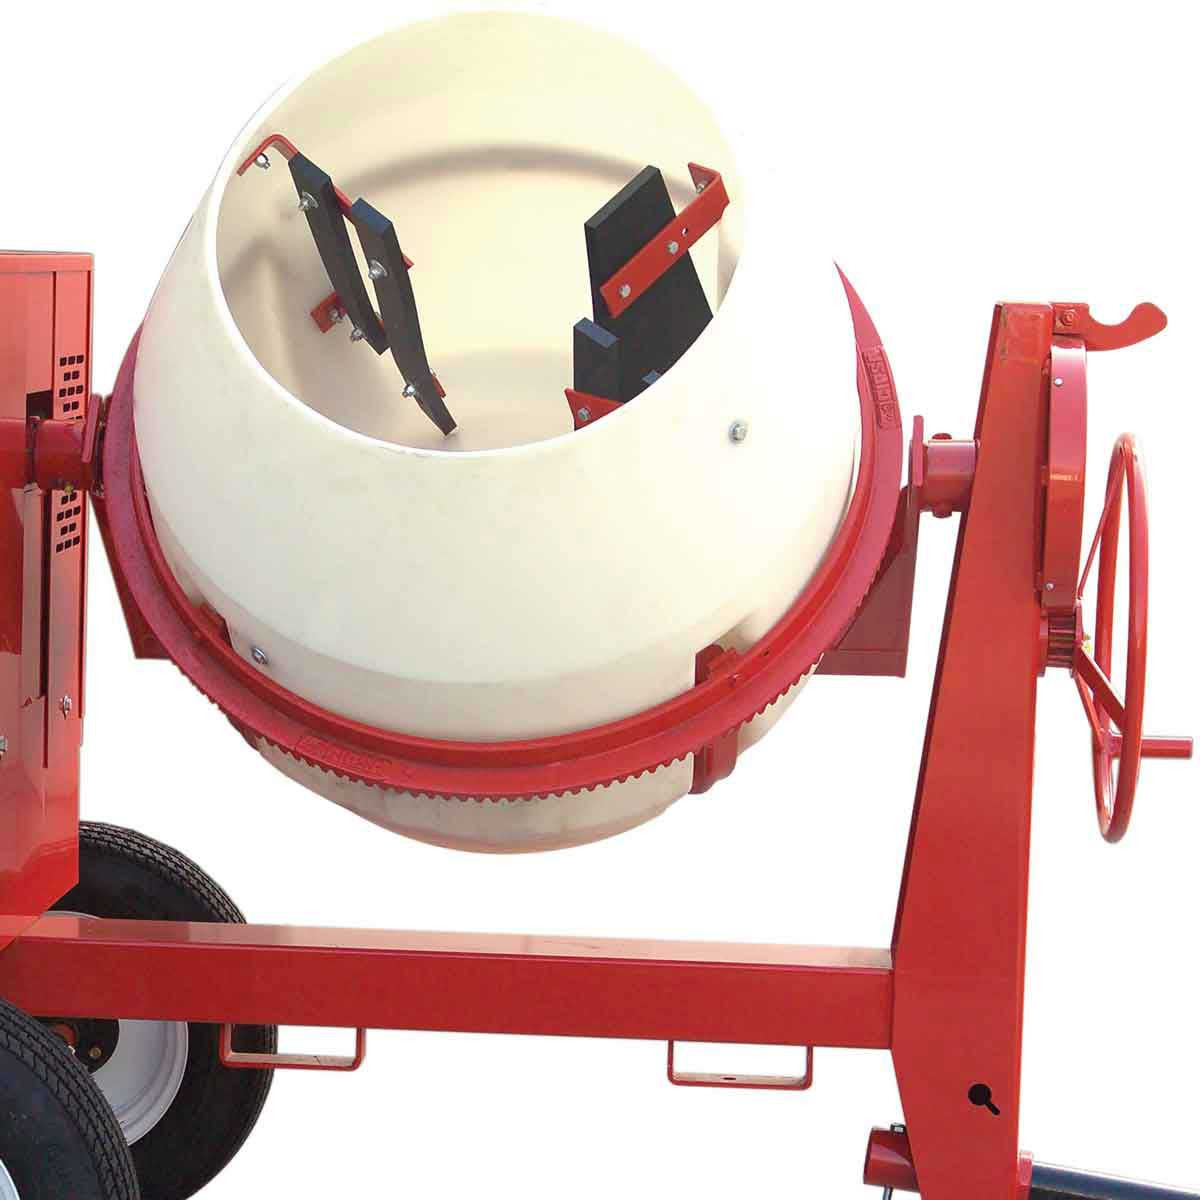 Multiquip concrete mixer drum